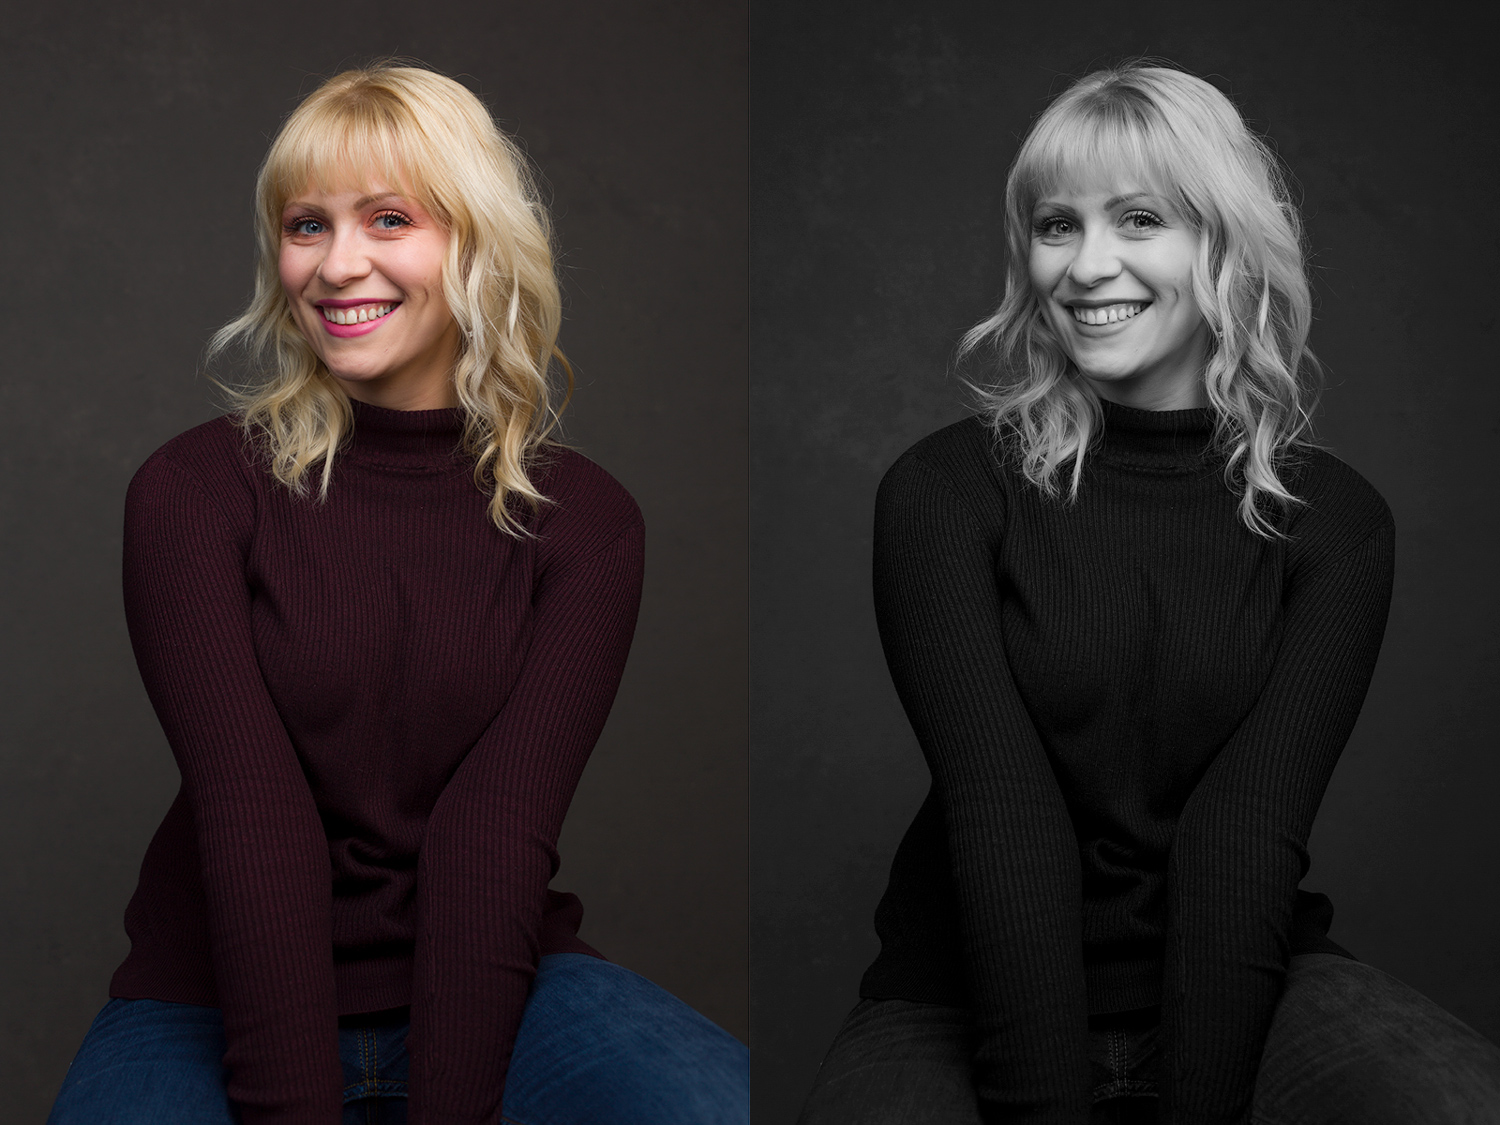 black and white vs color portrait comparison